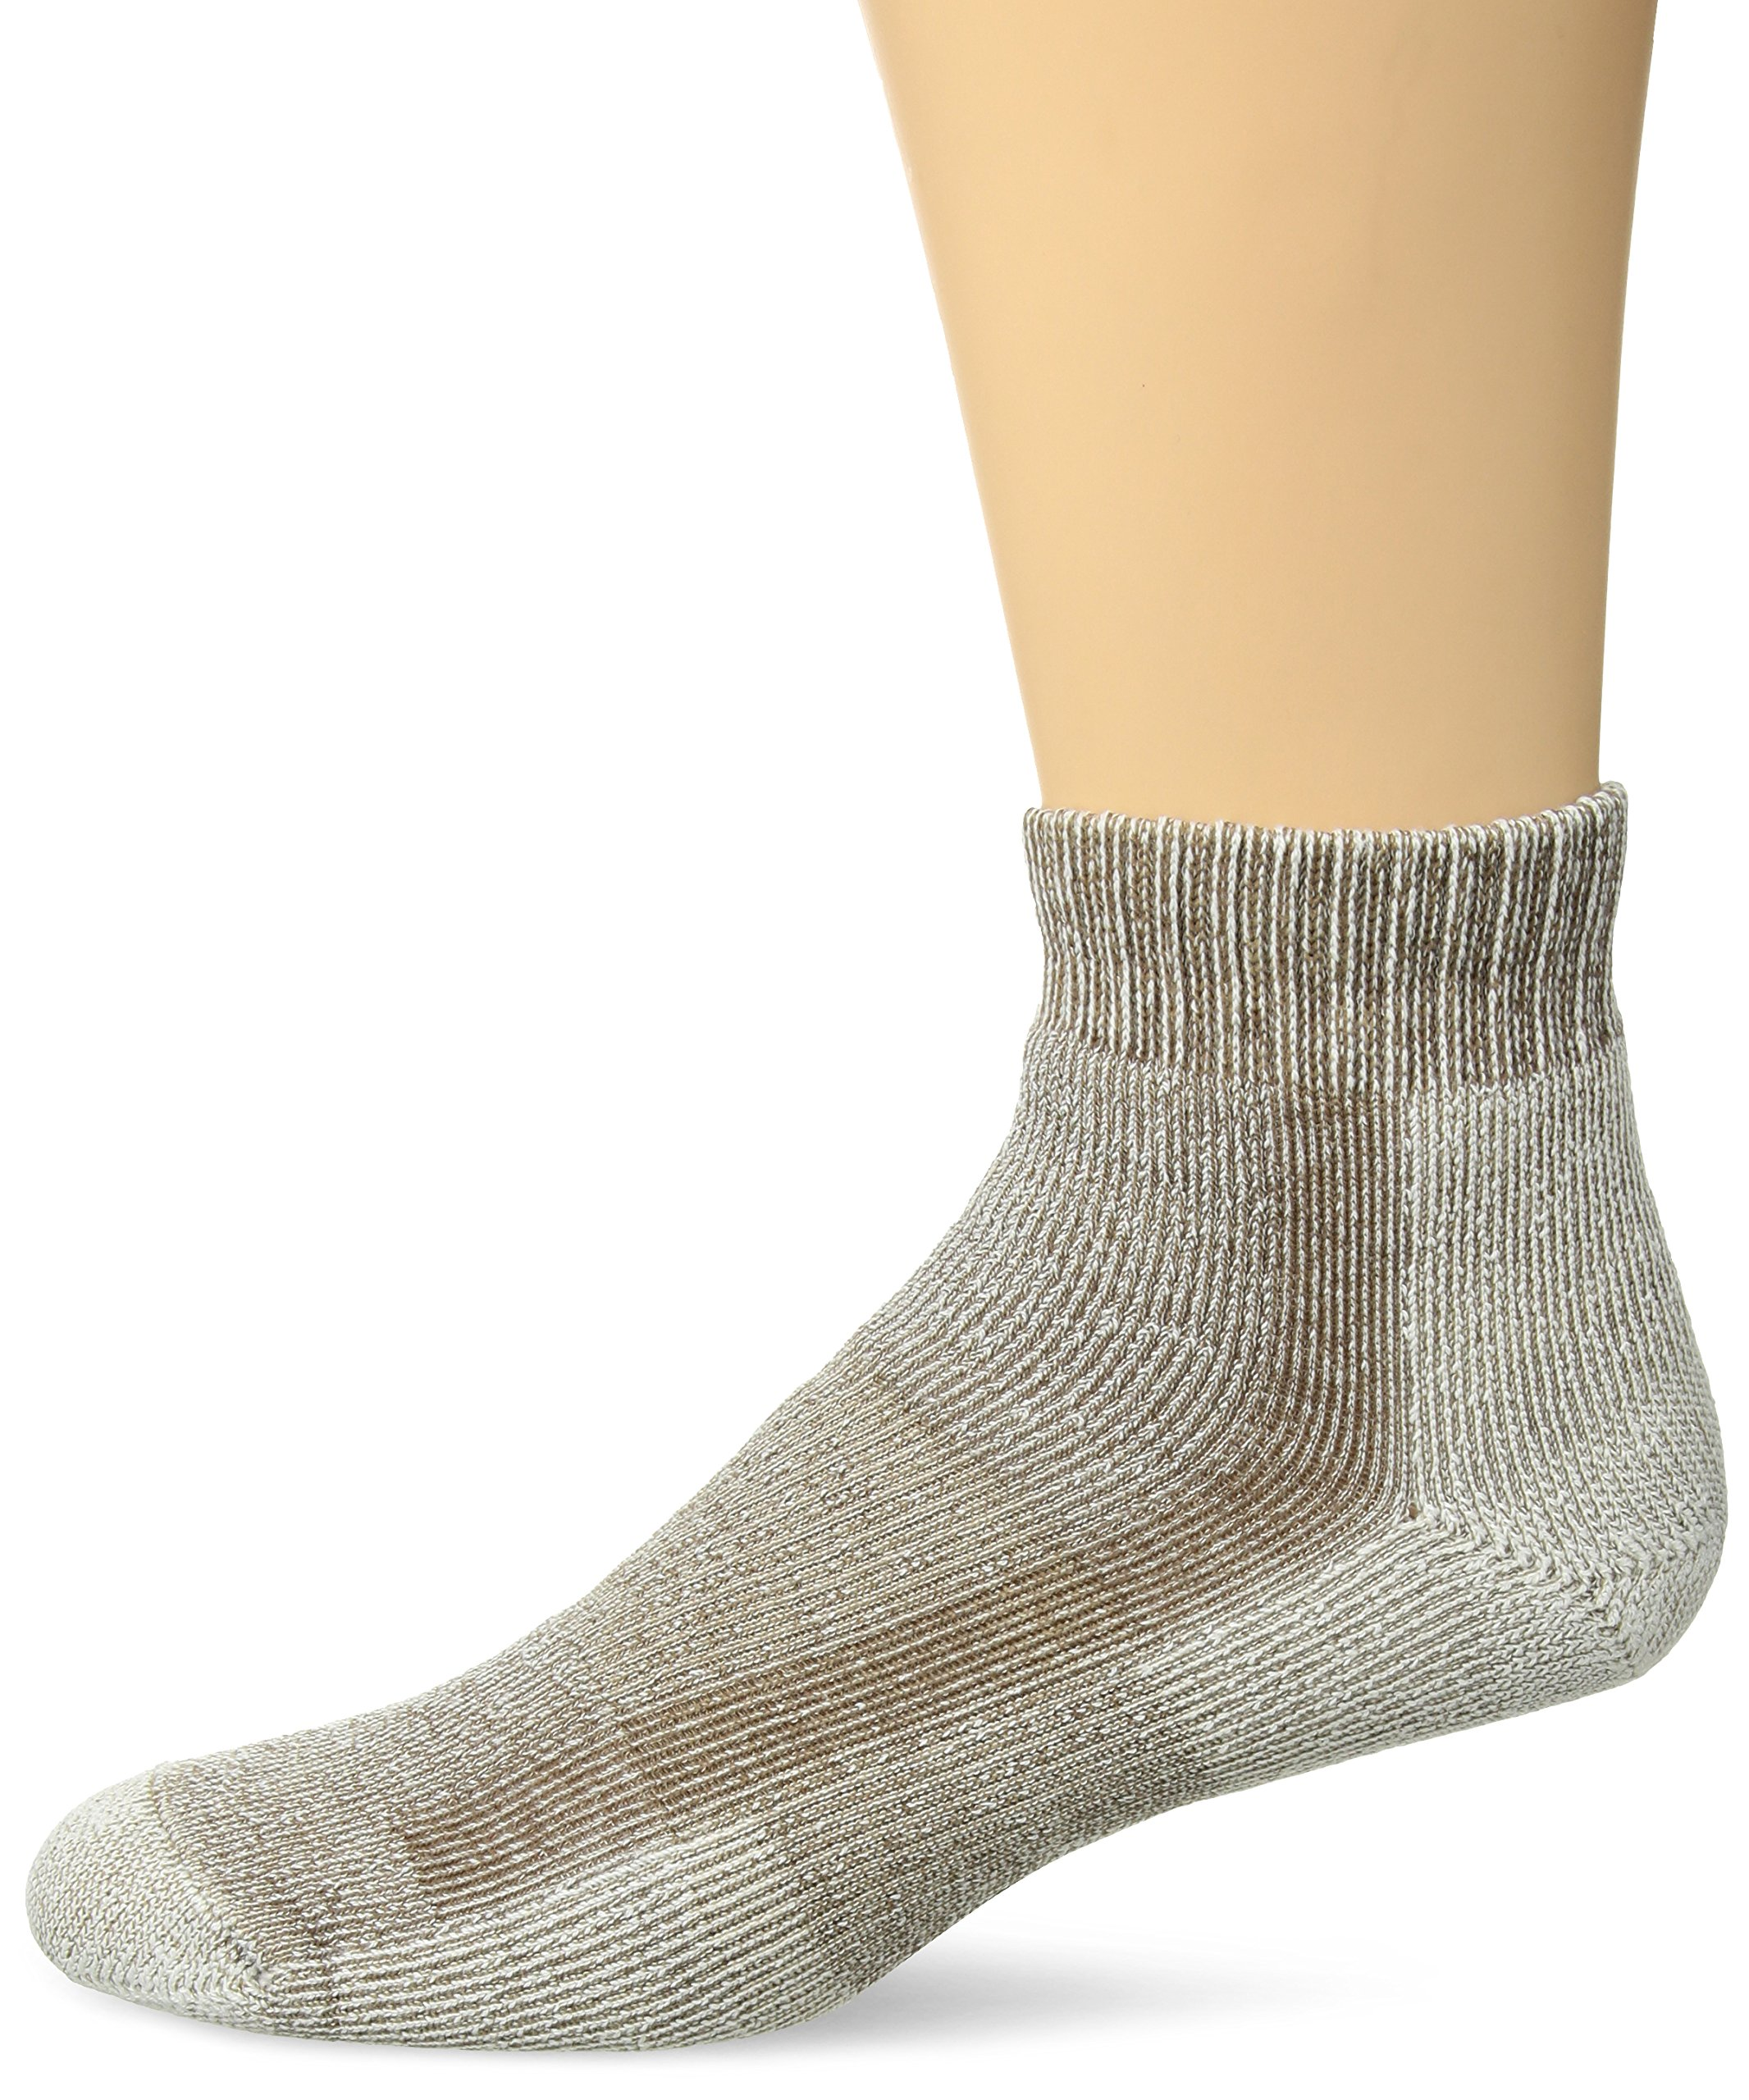 Thorlos Unisex LTHMX Light Hiking Thick Padded Ankle Sock, Walnut, Medium by thorlos